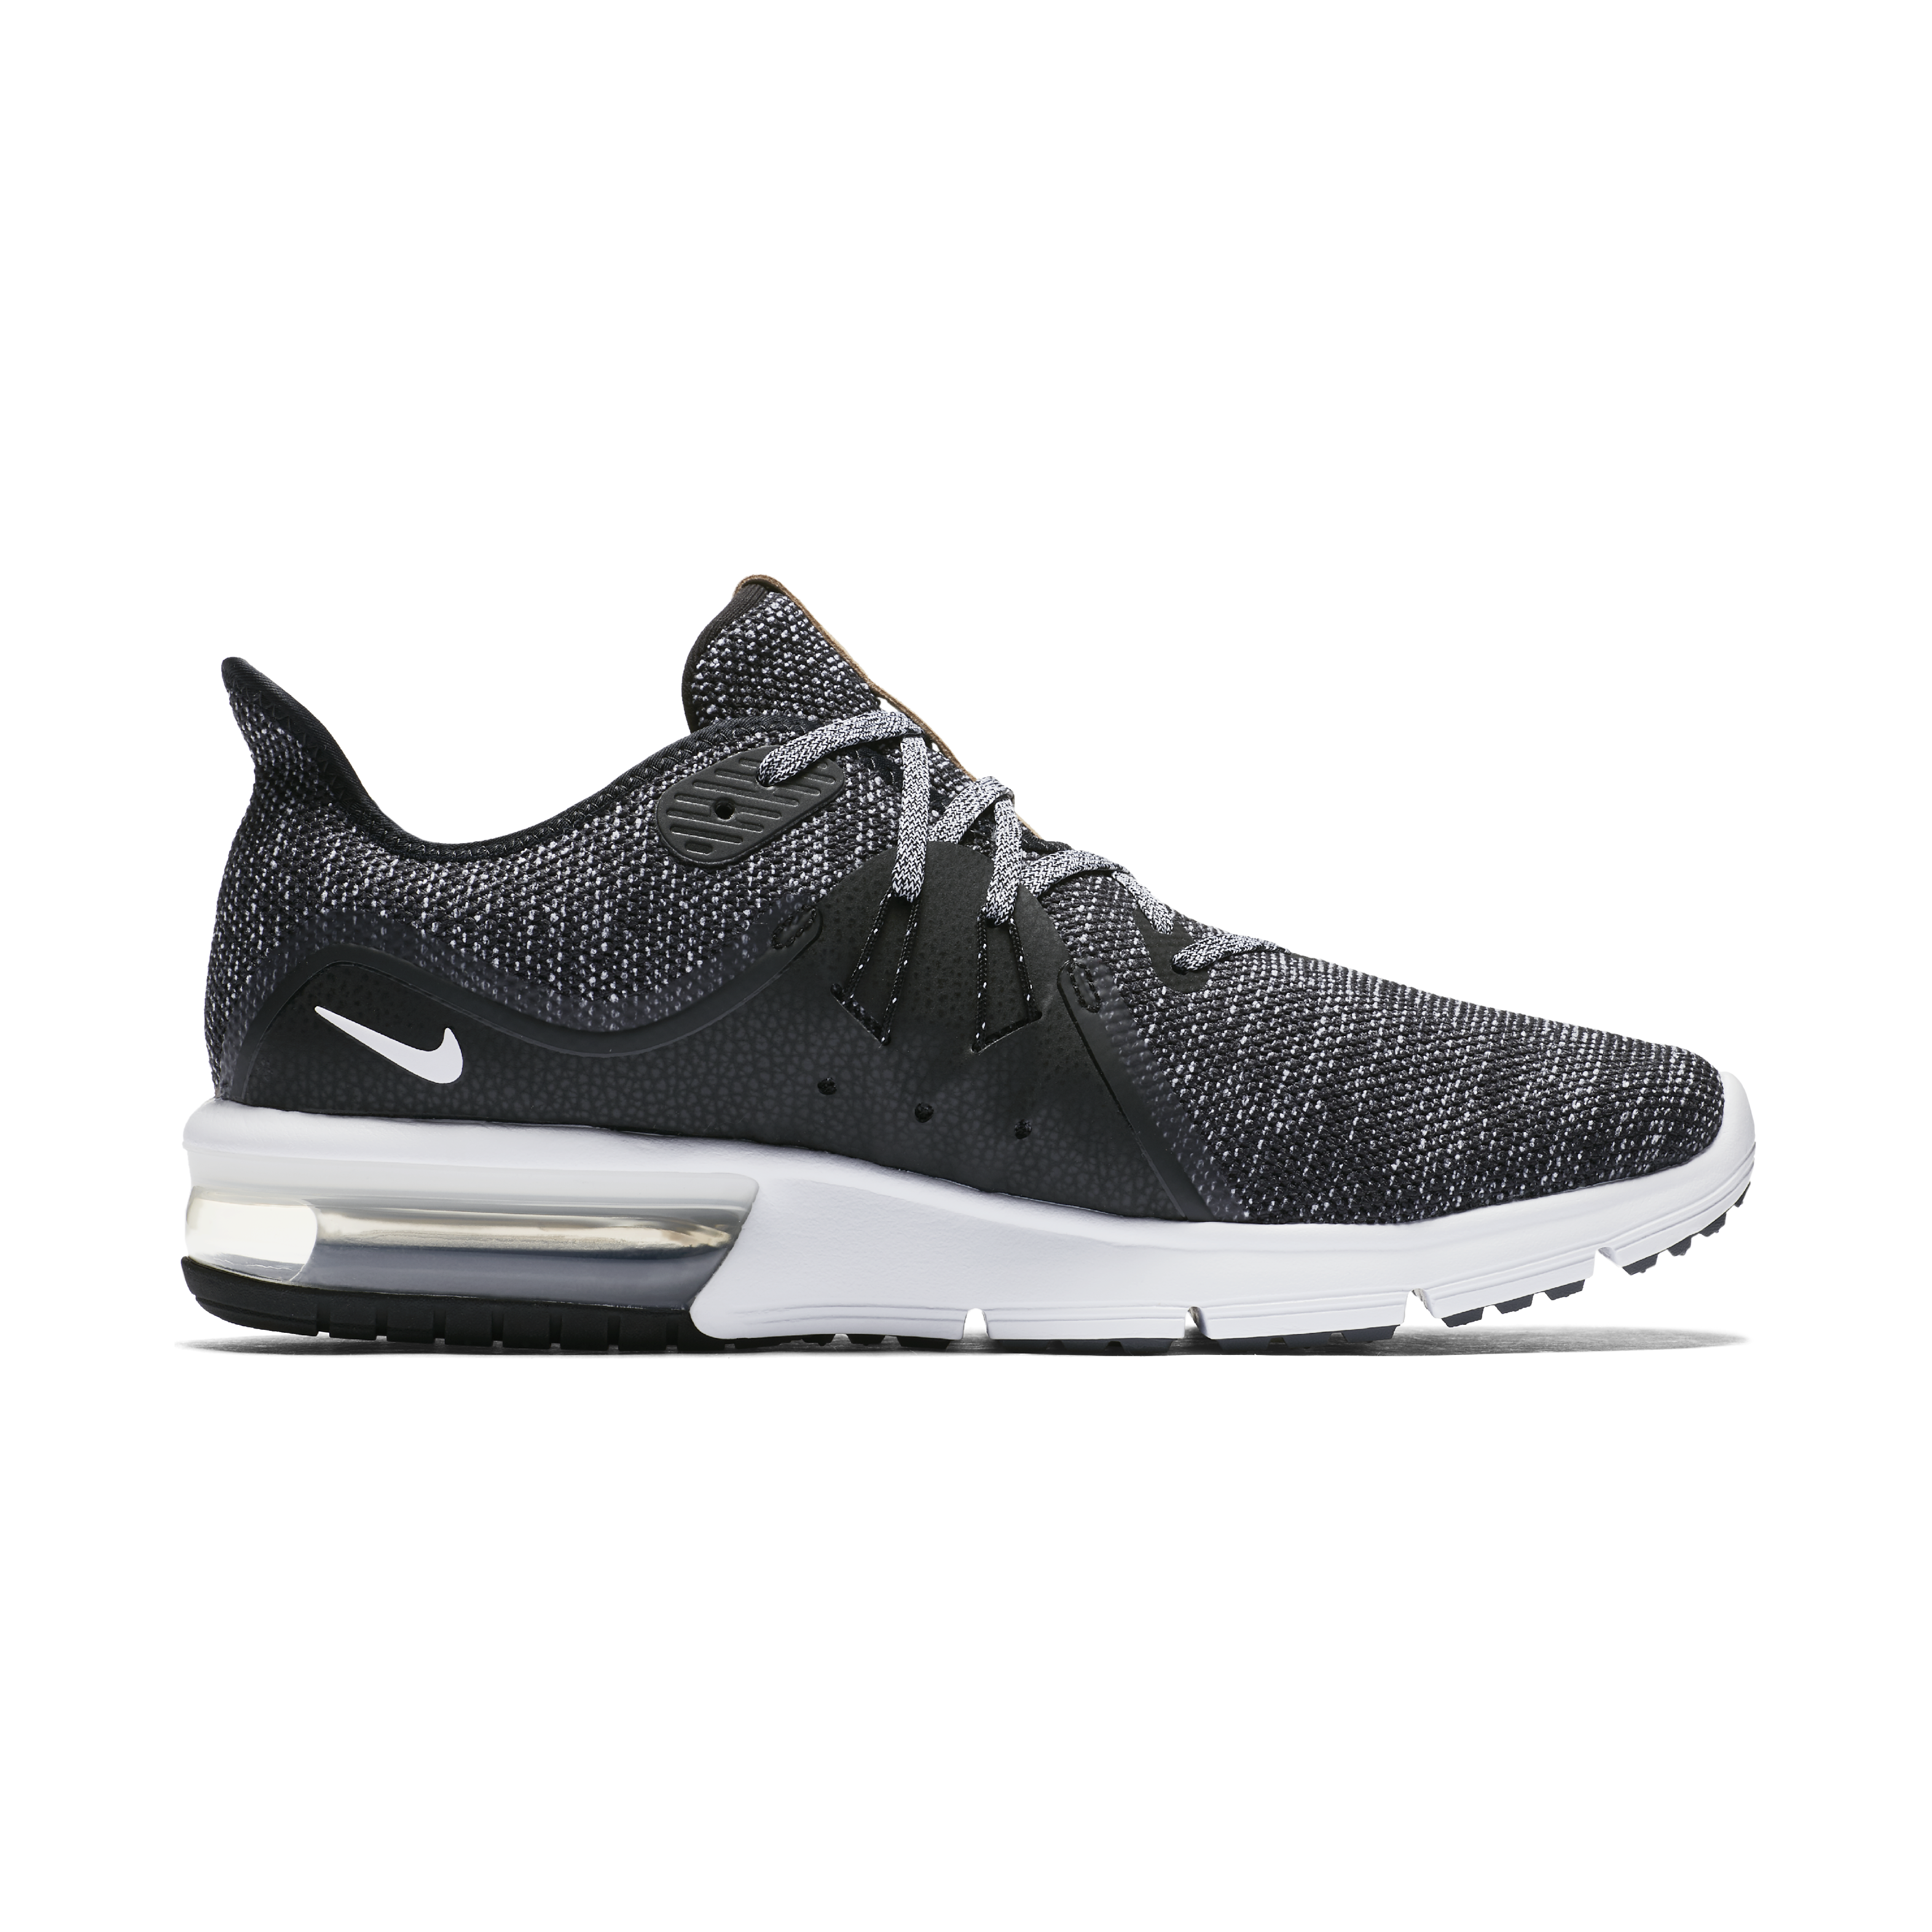 Wholesale price Nike Air Max Sequent Running Shoes Black